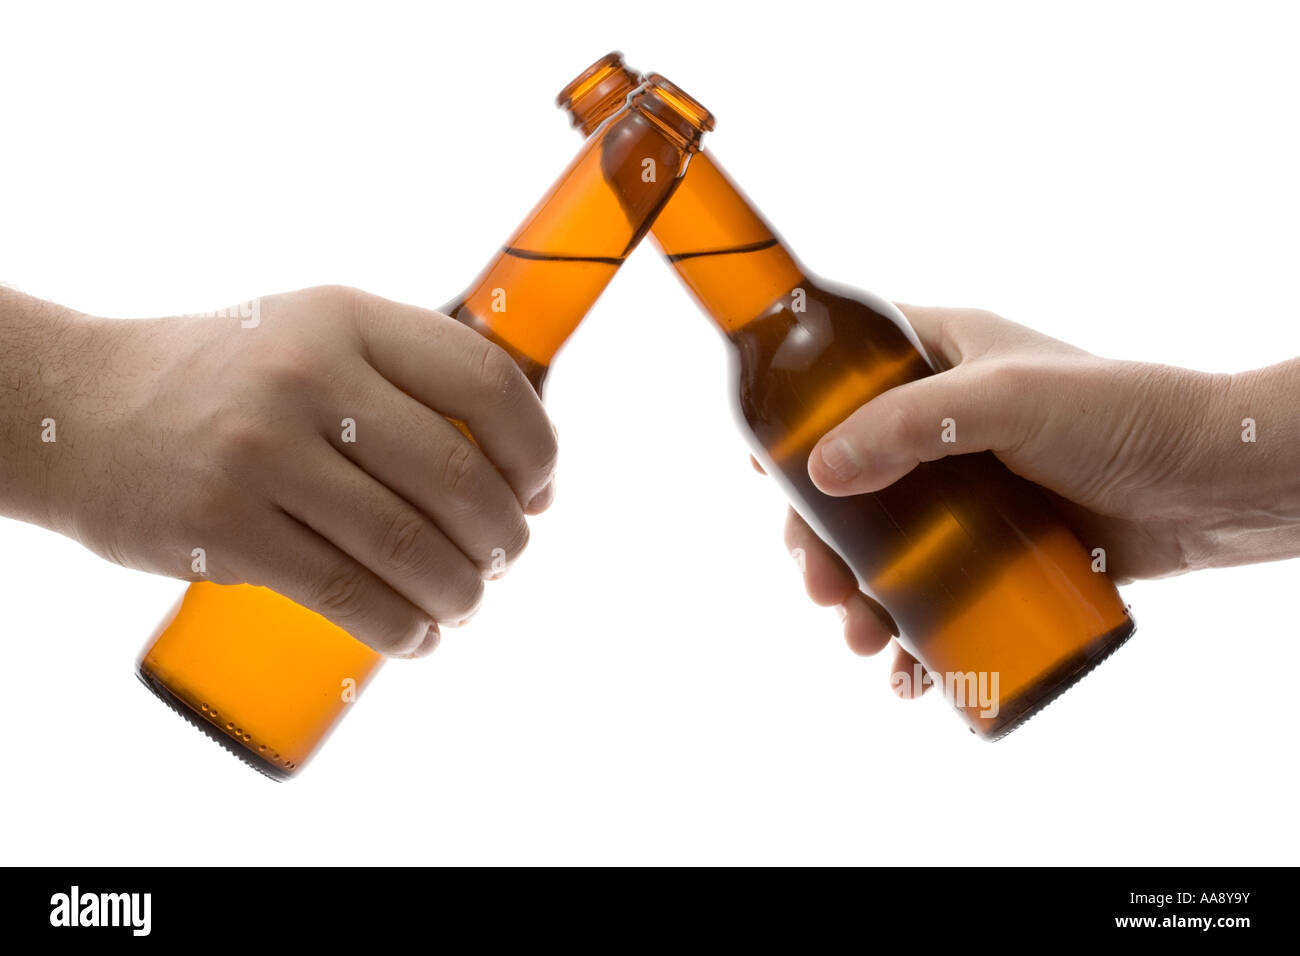 Two people holding a beer bottle Stock Photo: 12553190 - Alamy